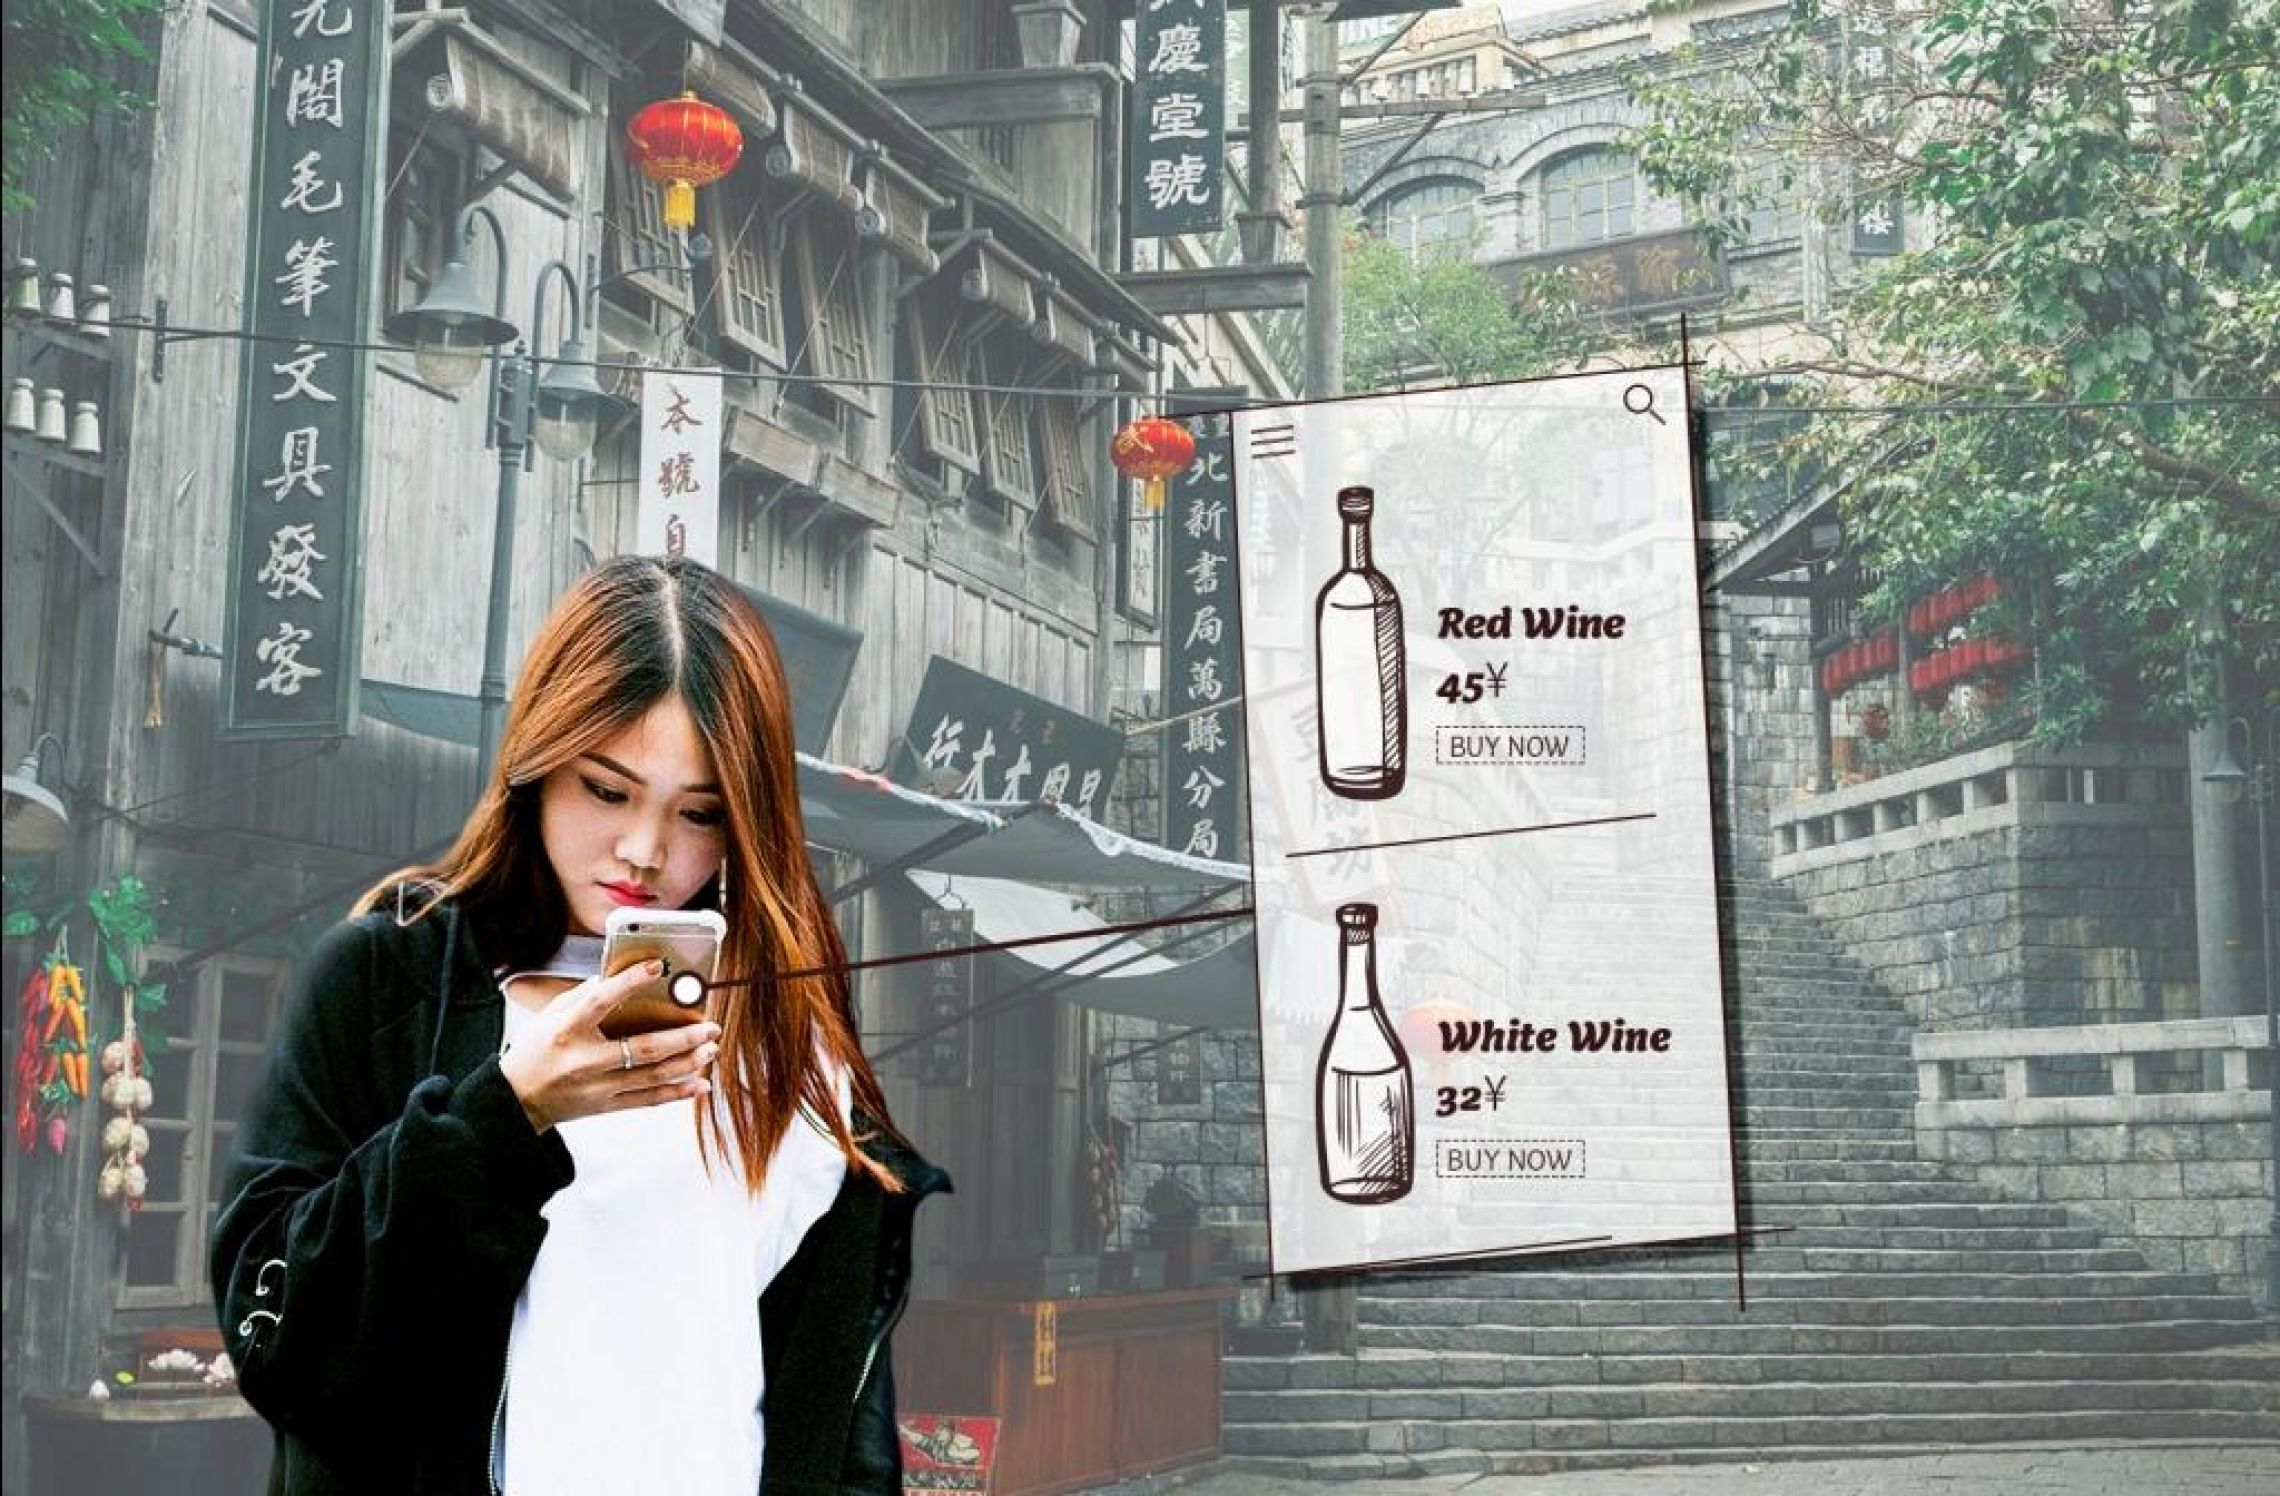 bff08d17f Photo for  The Most Important Websites for Wine Sales in China